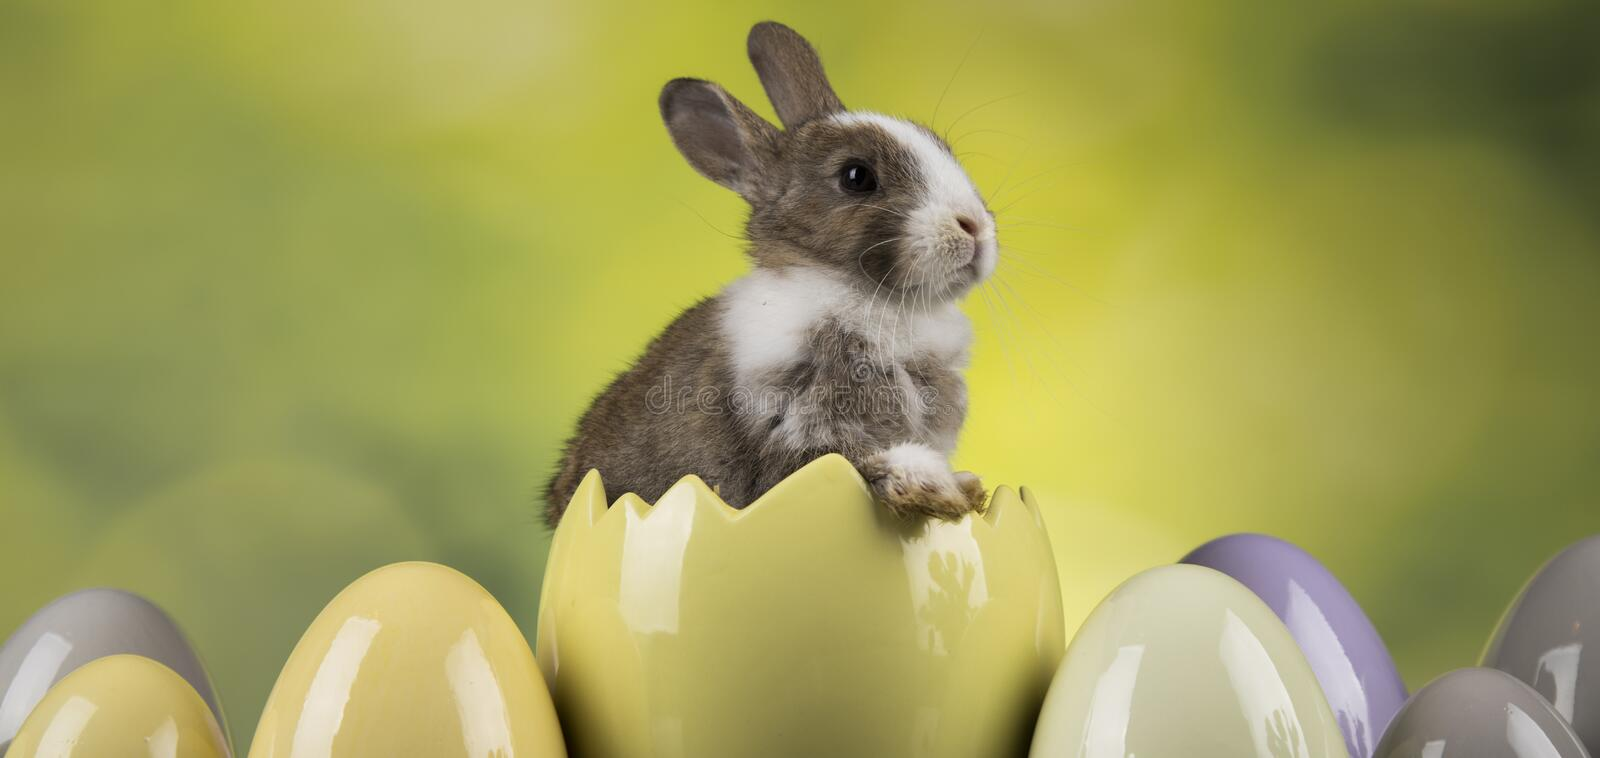 Little cute baby rabbit, Easter animal holiday, eggs and green background royalty free stock photo